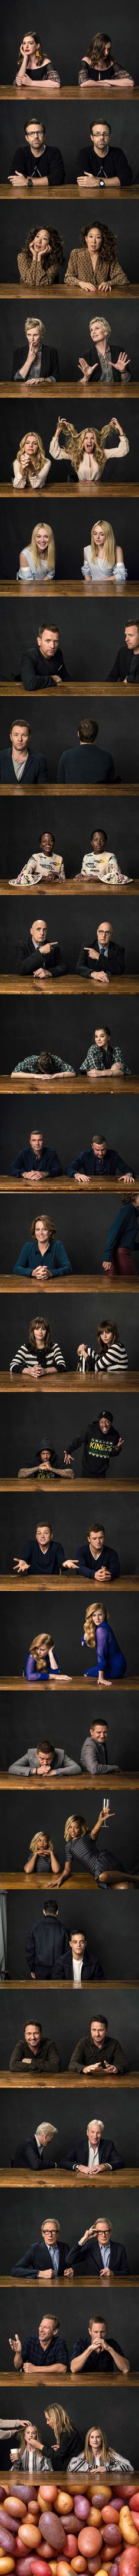 Photographer Asked Celebrities To Reveal Their Public And Private Personalities In Intimate Double-Portraits